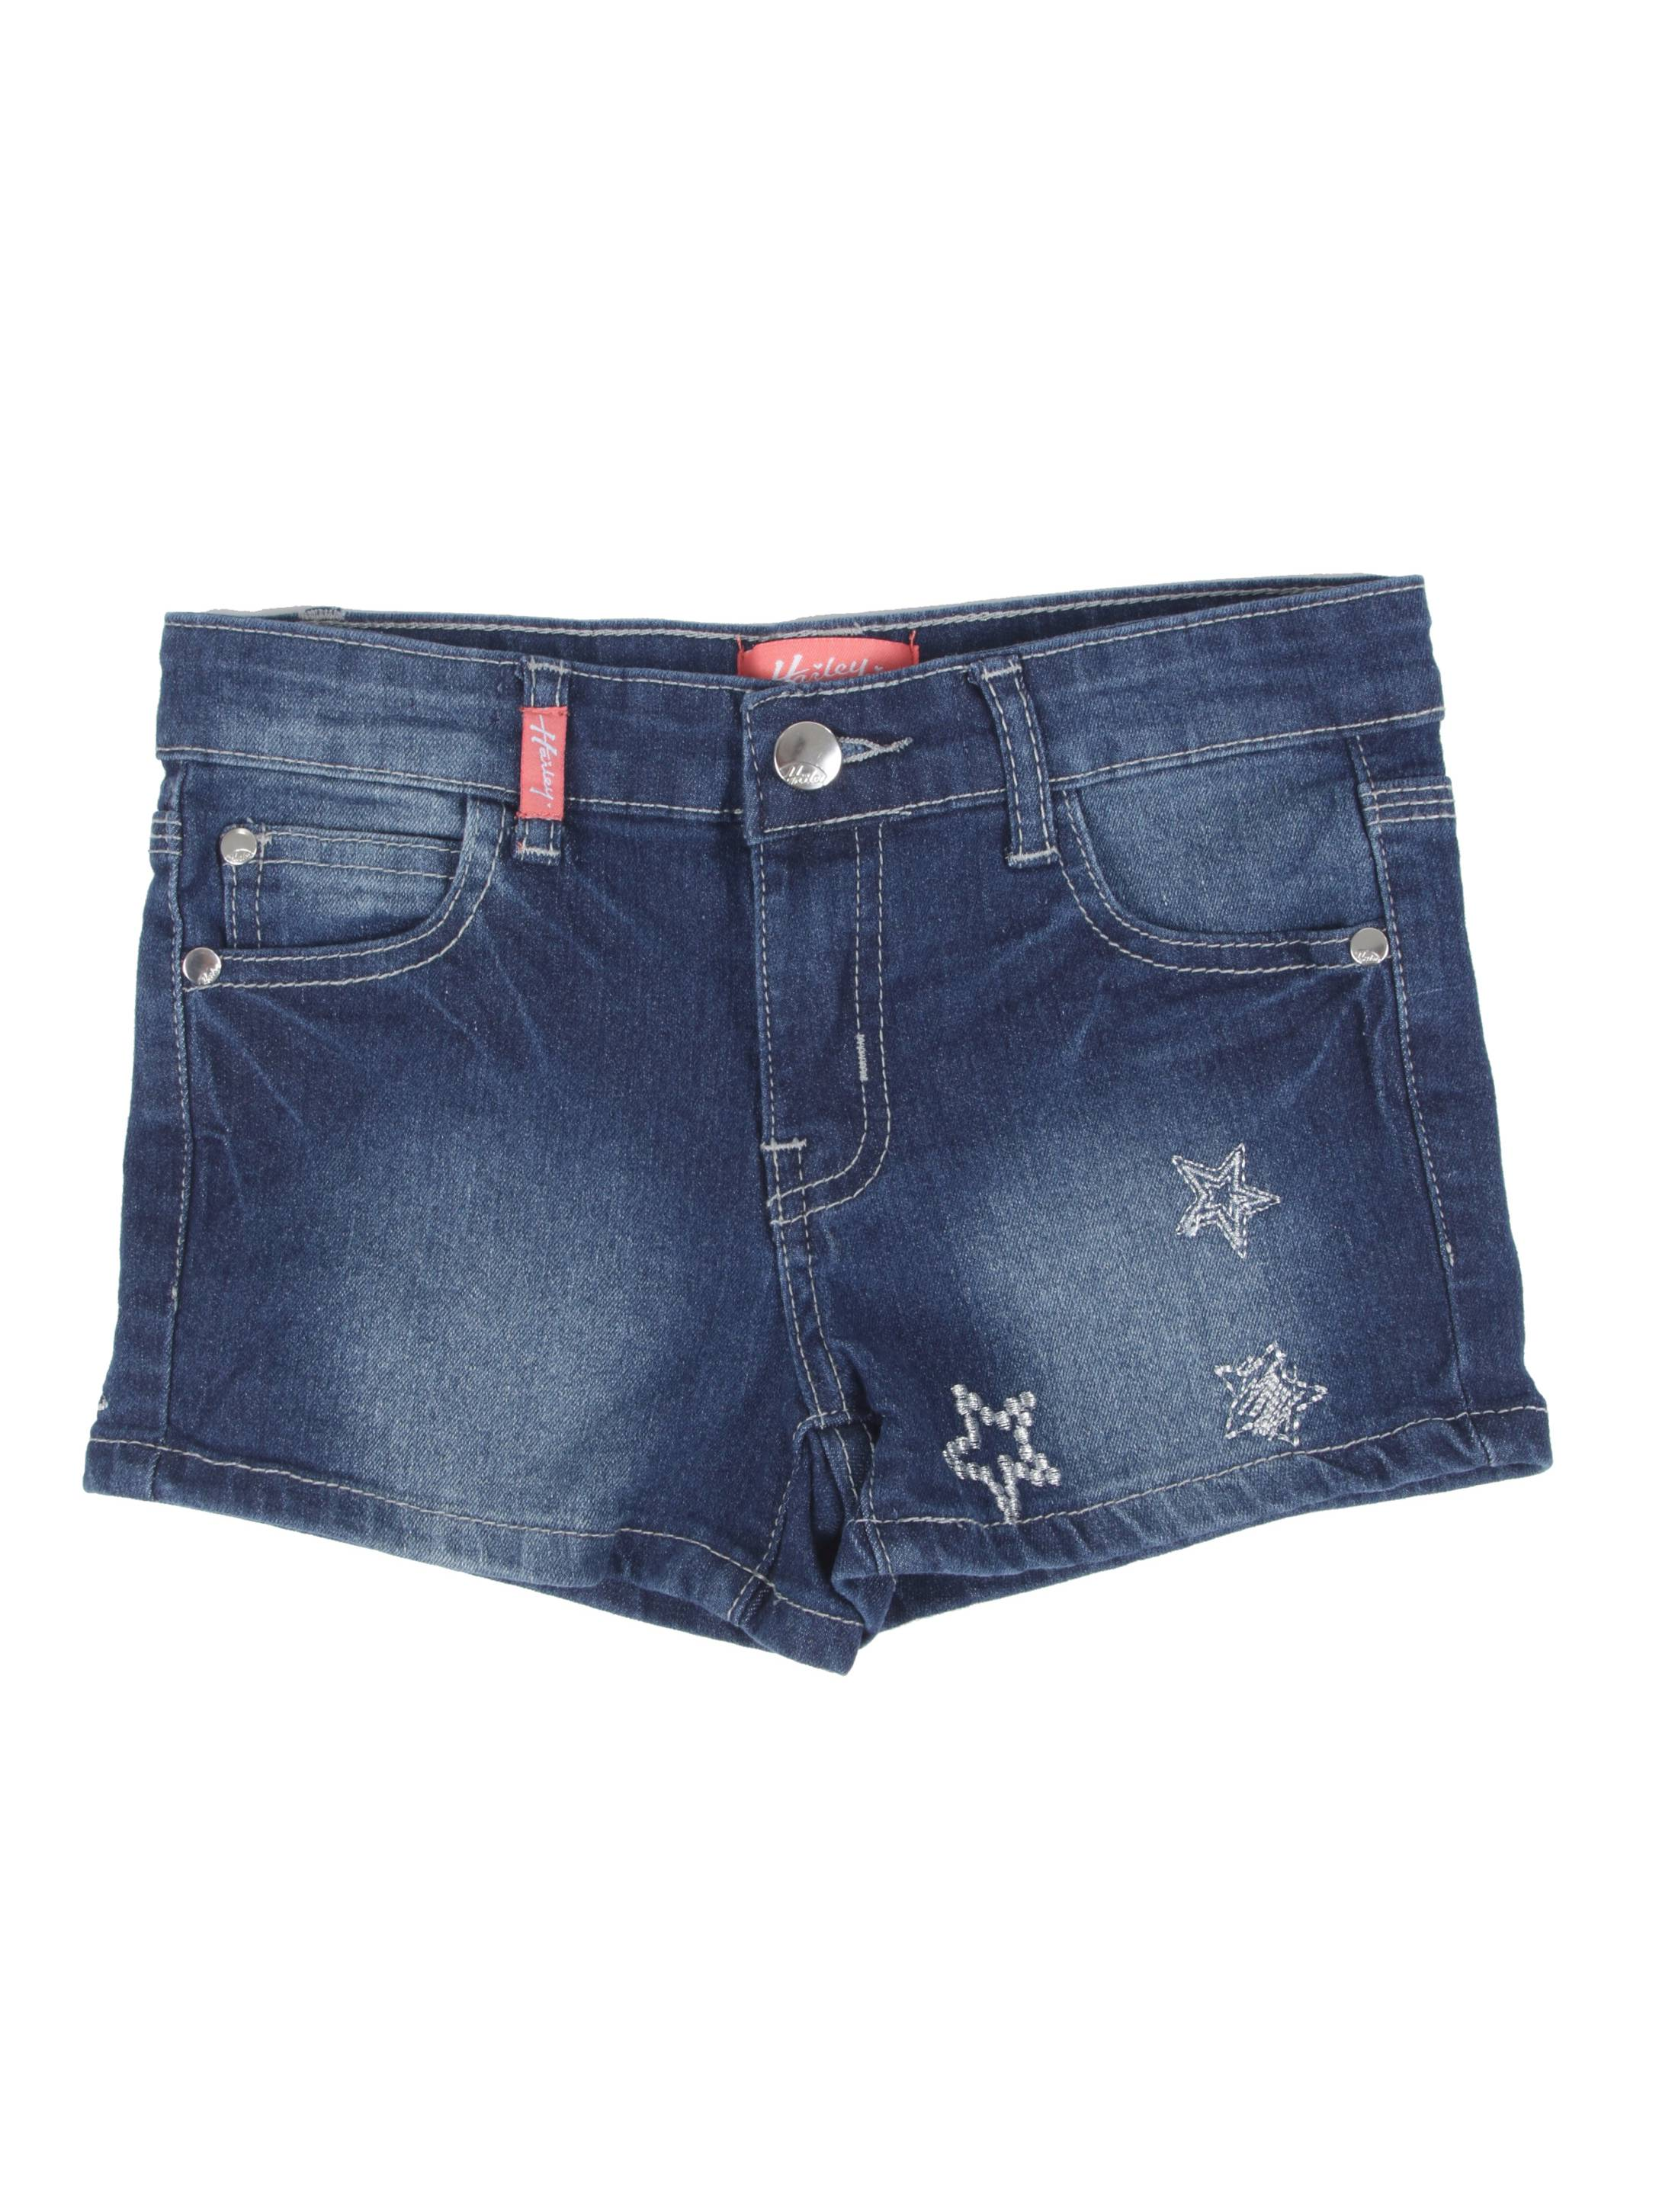 9H068(SH) - Girls Stretch 5 Pockets Premium Shorts with Embroidery